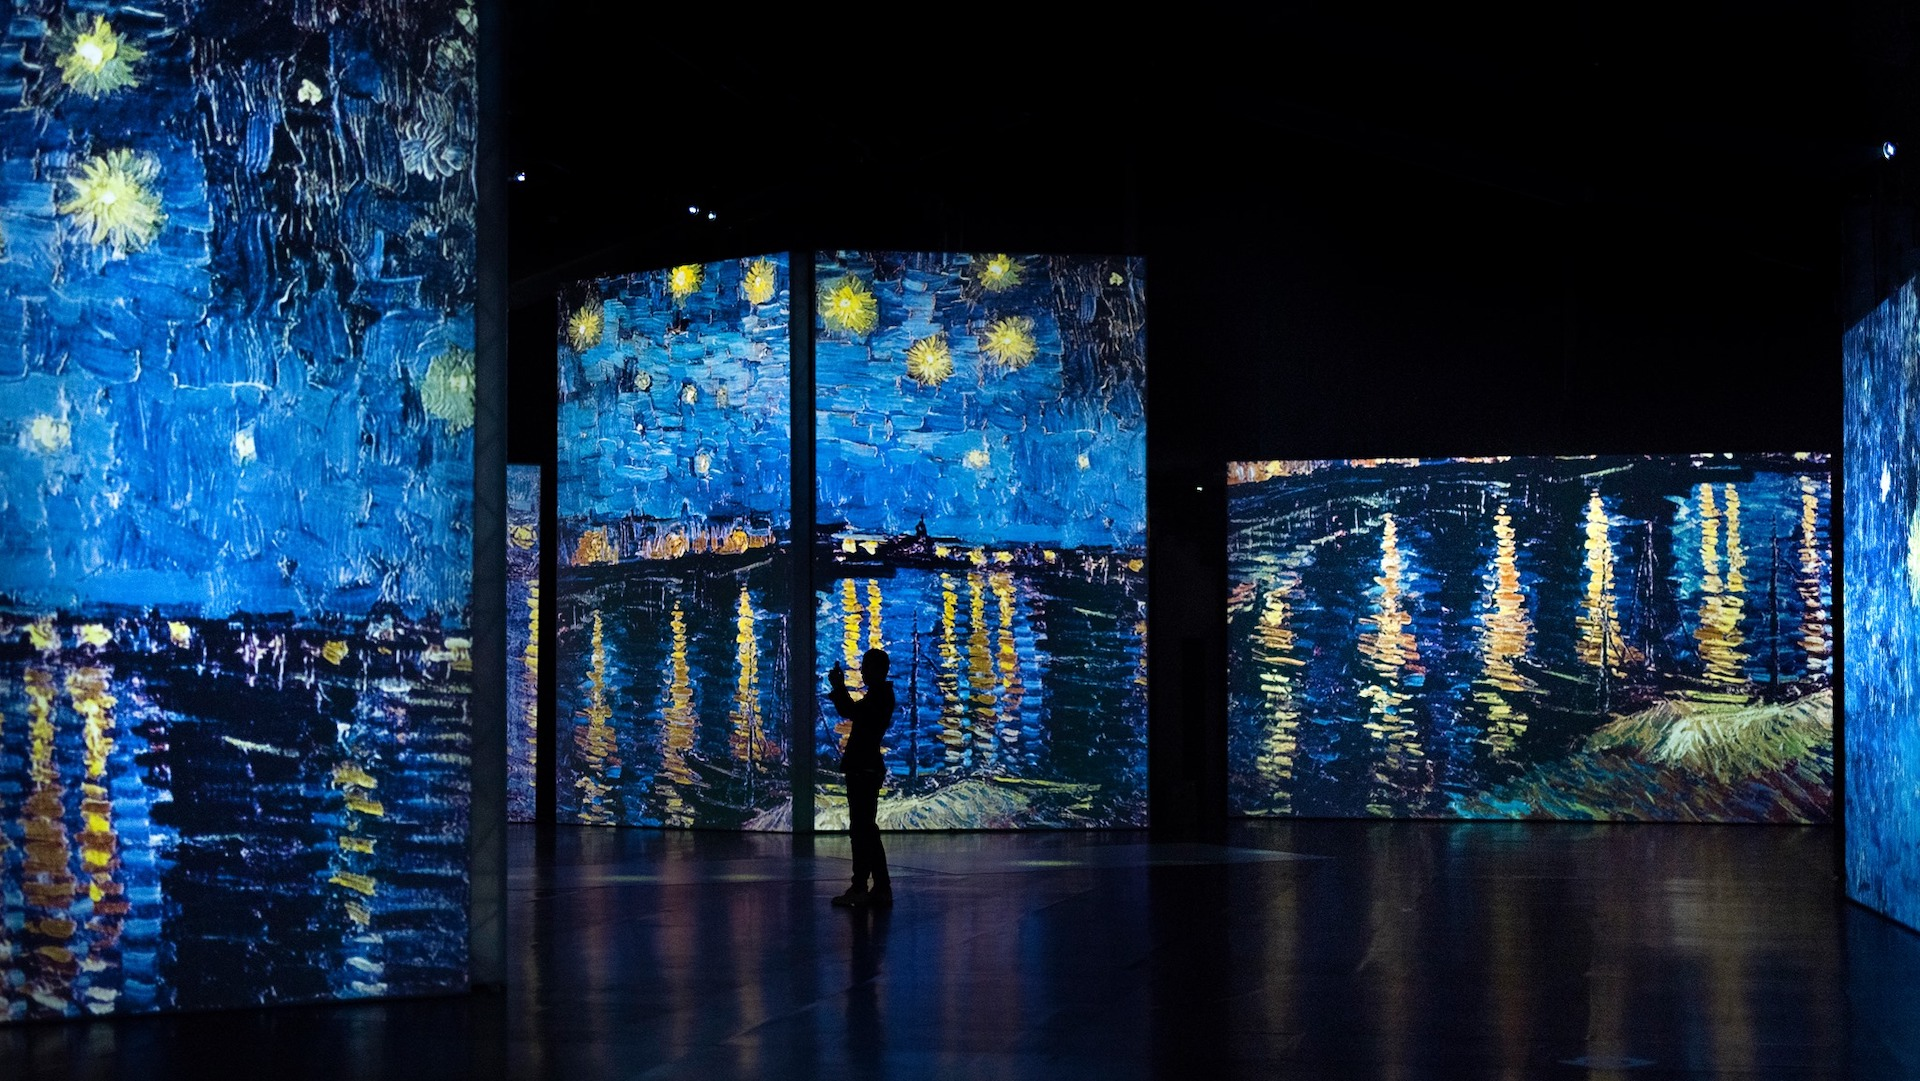 You can walk inside Van Gogh paintings at The Dali Museum's new exhibit